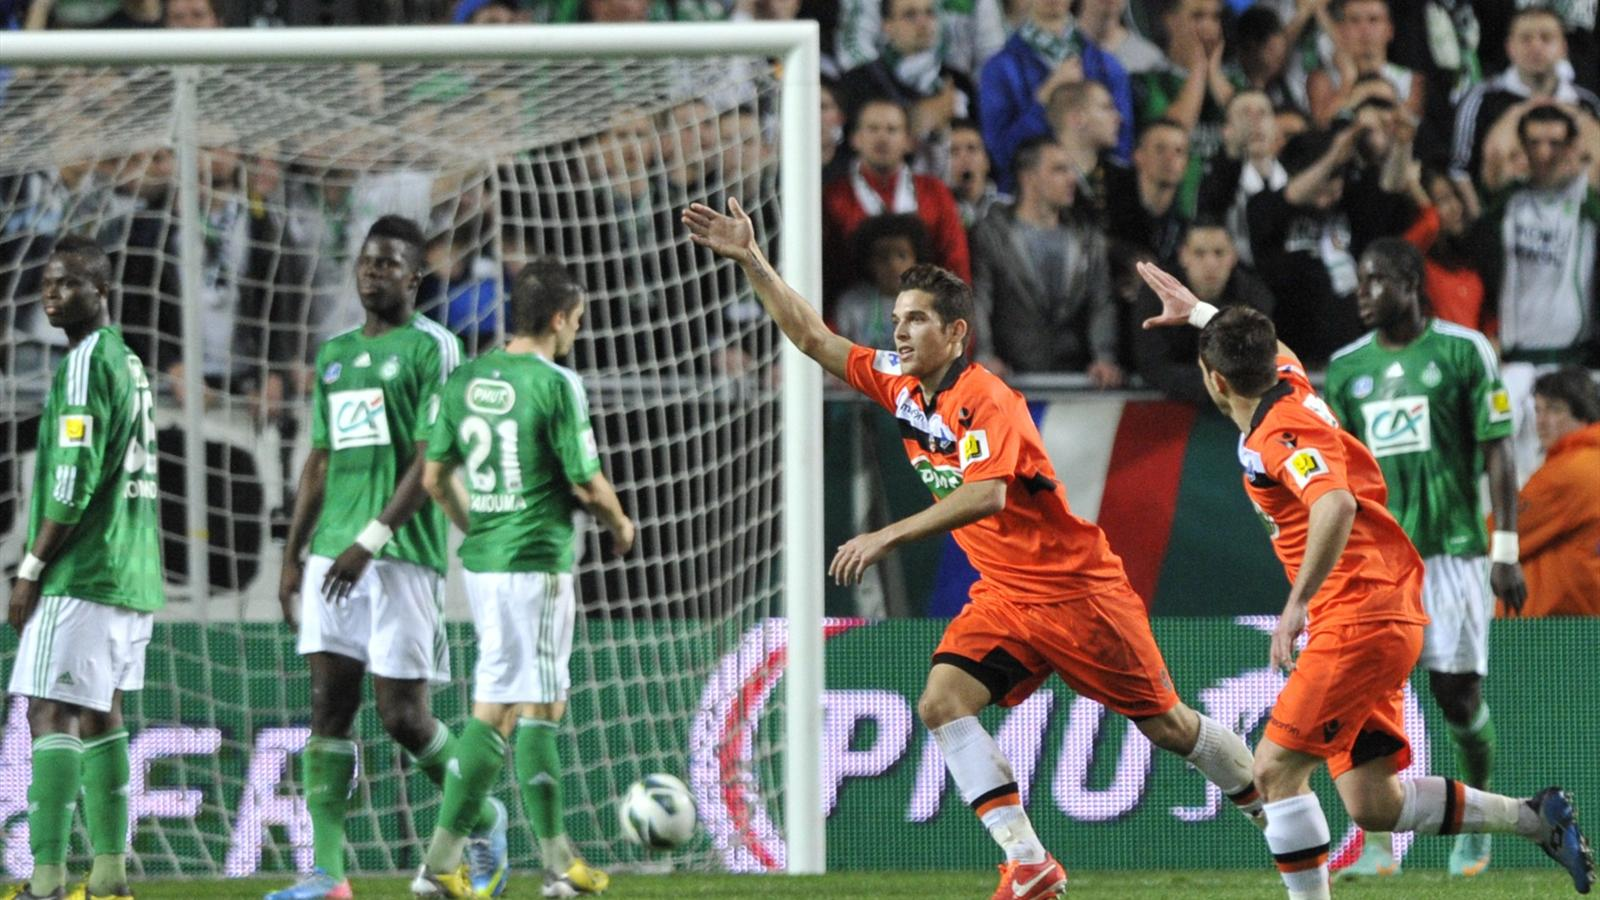 Match FC Lorient vs AS Saint-Etienne en direct live streaming